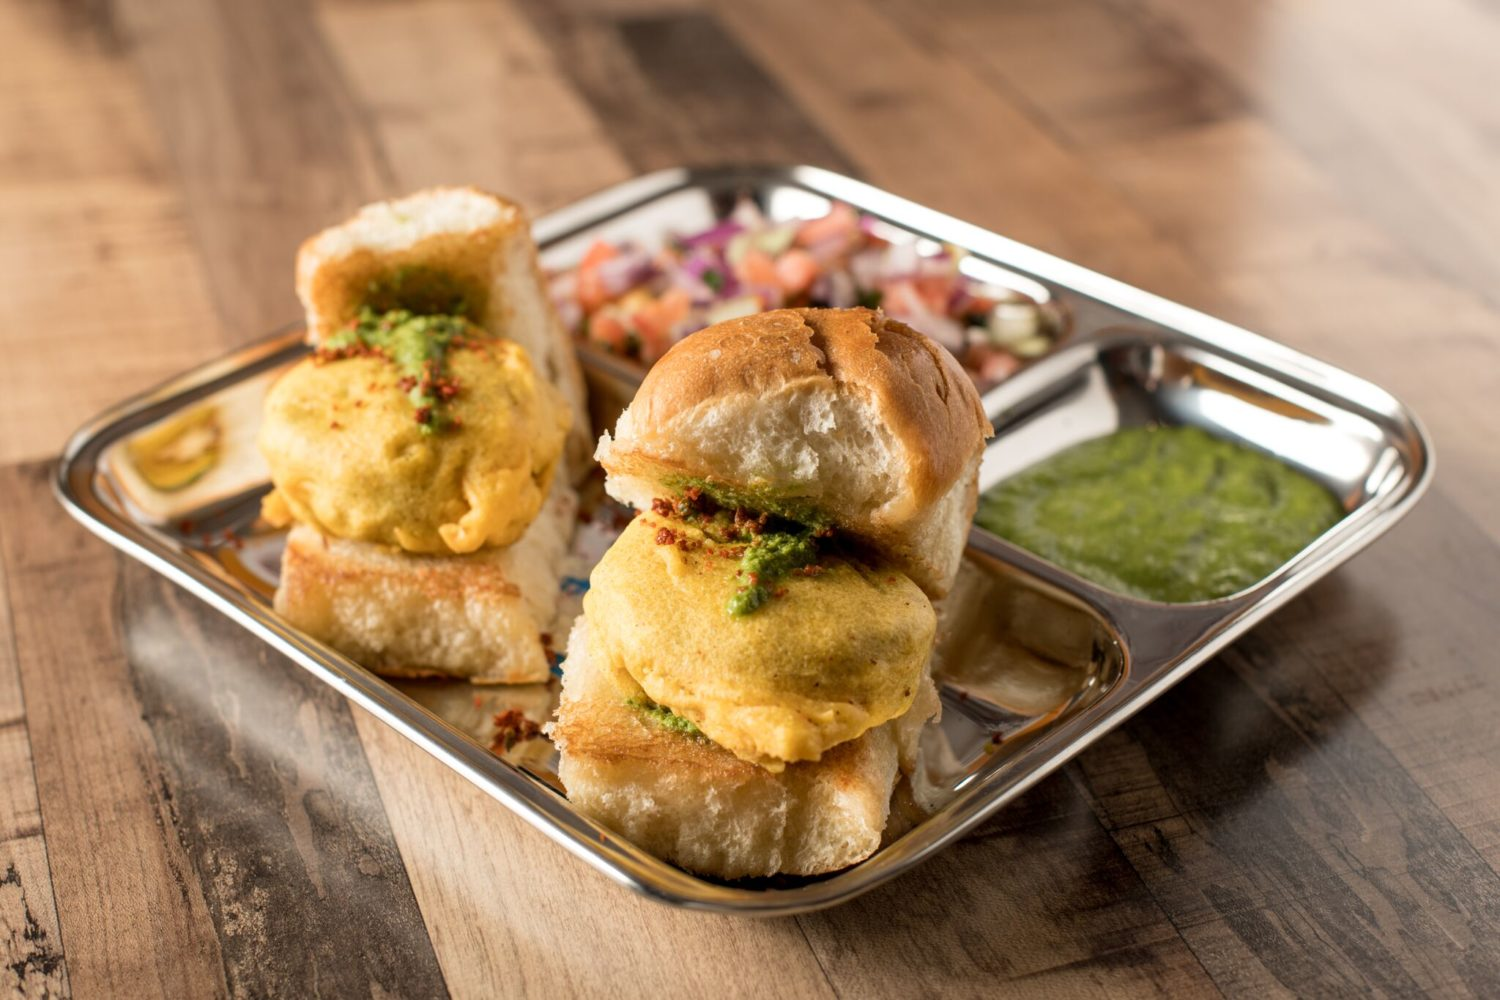 Vada Pav, one of Asad Sheikh's favorite treats growing up. Photograph by Emma McAlary.